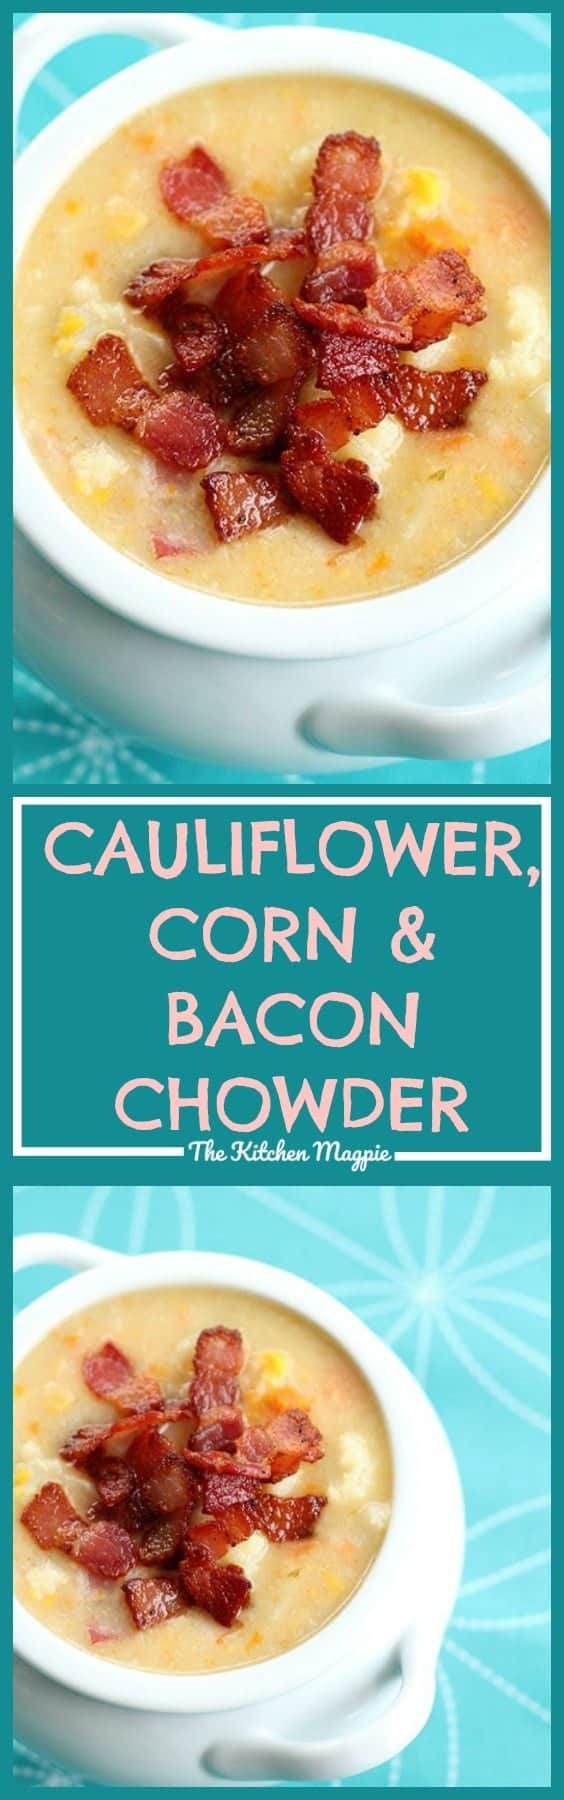 Amazing chowder that uses cauliflower instead of potatoes to create a creamy chowder that's not only better for you but absolutely delicious! #lowcarb #bacon #chowder #corn #cauliflower